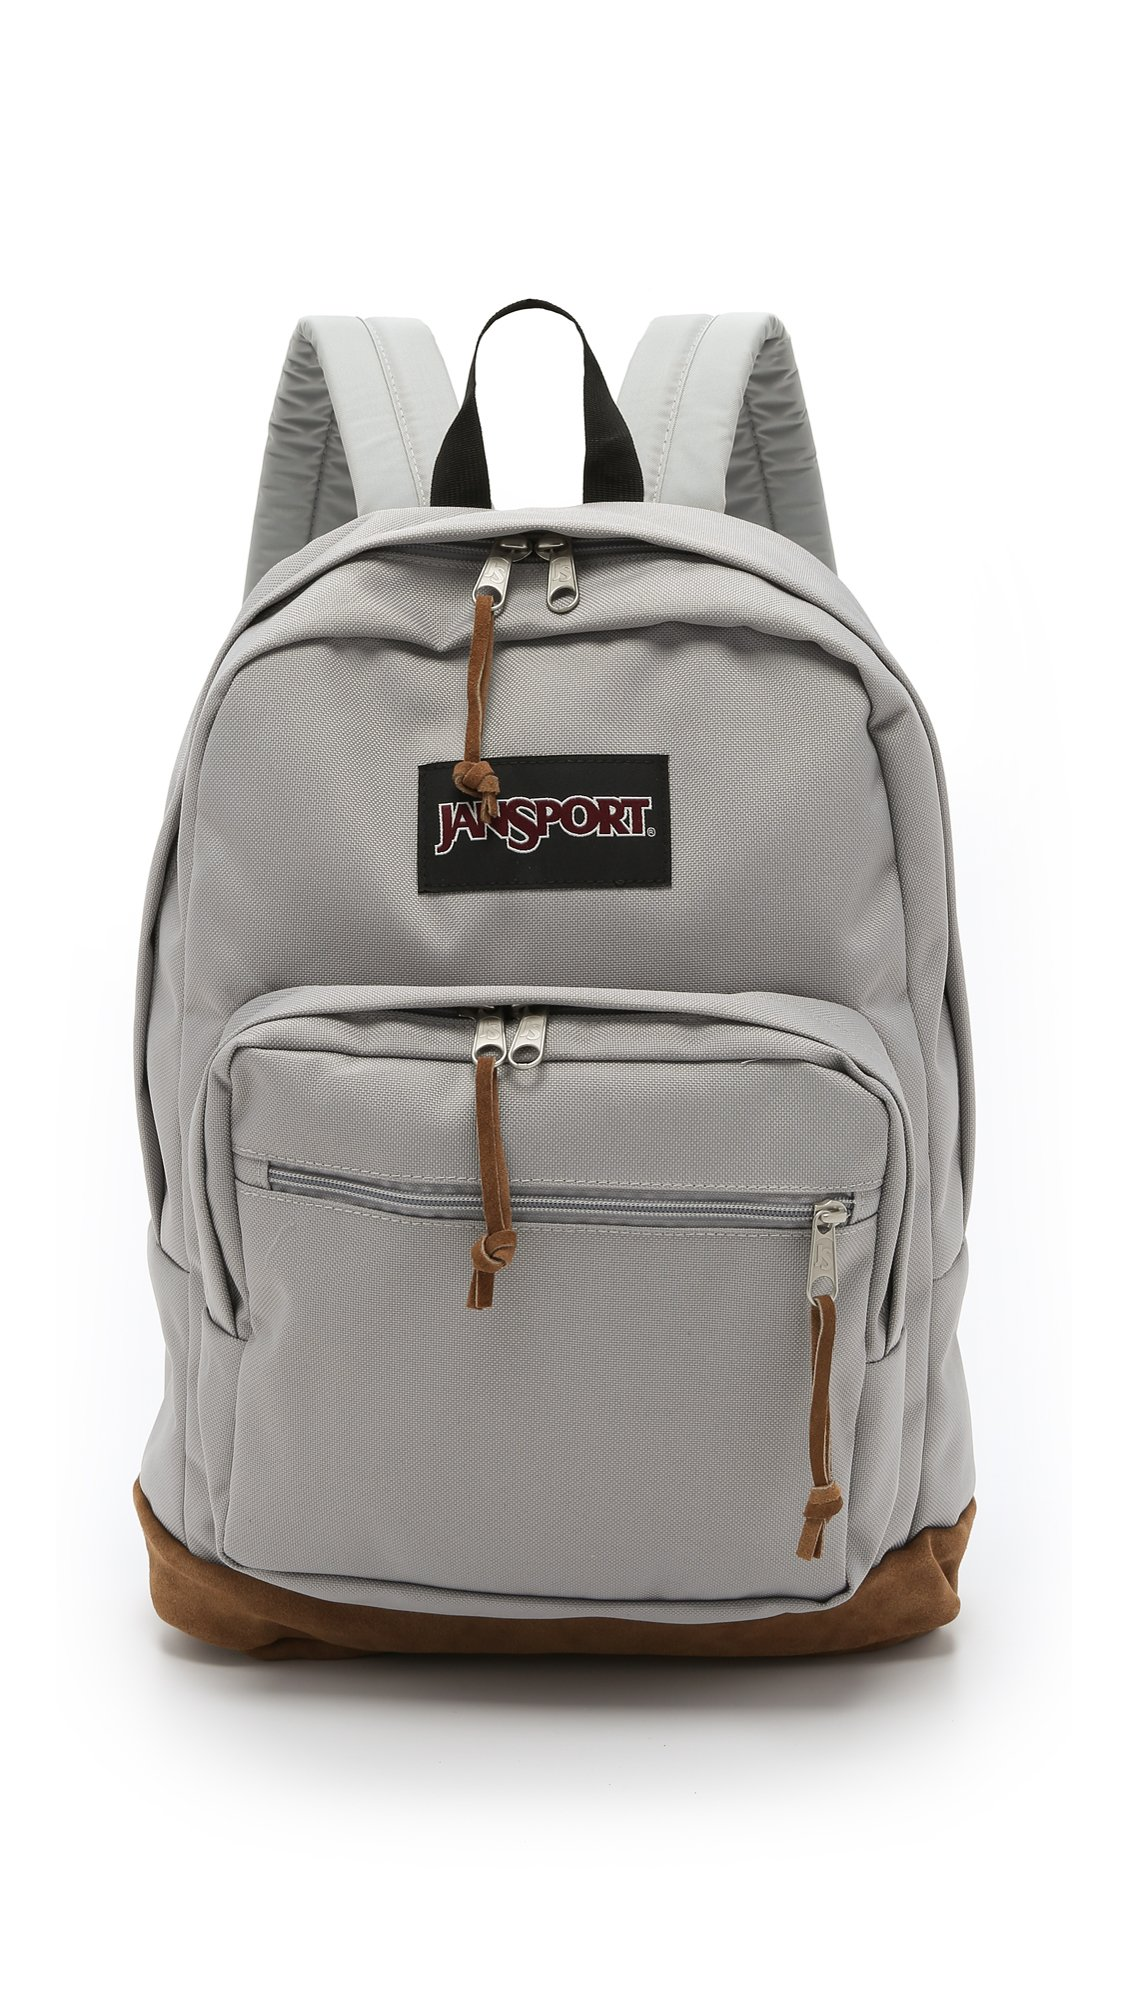 Jansport Right Pack Backpack - Grey Rabbit in Gray | Lyst